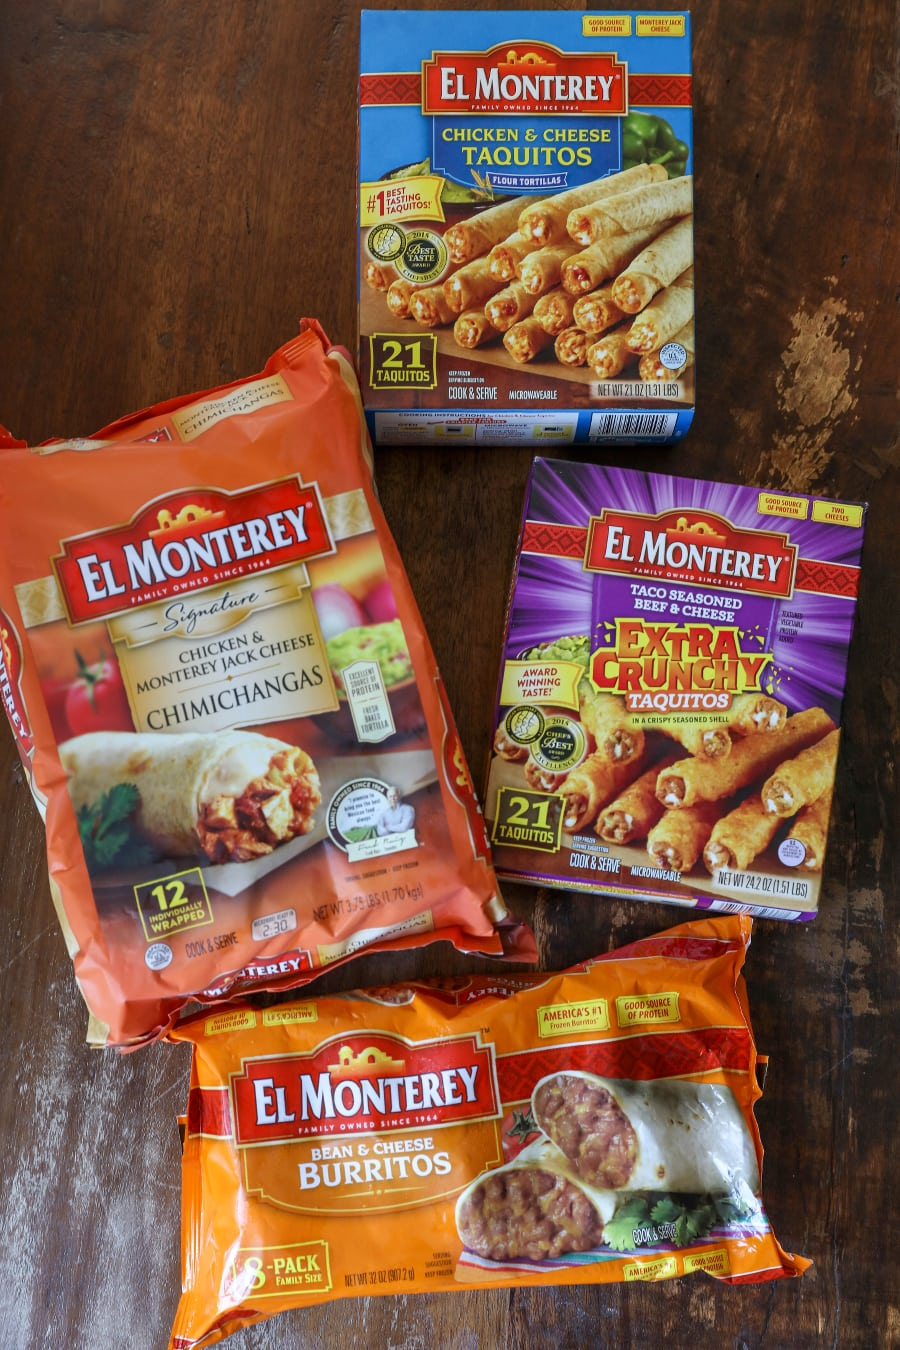 El Monterey Taquitos and Burritos - some of the kids' favorite after school snacks!